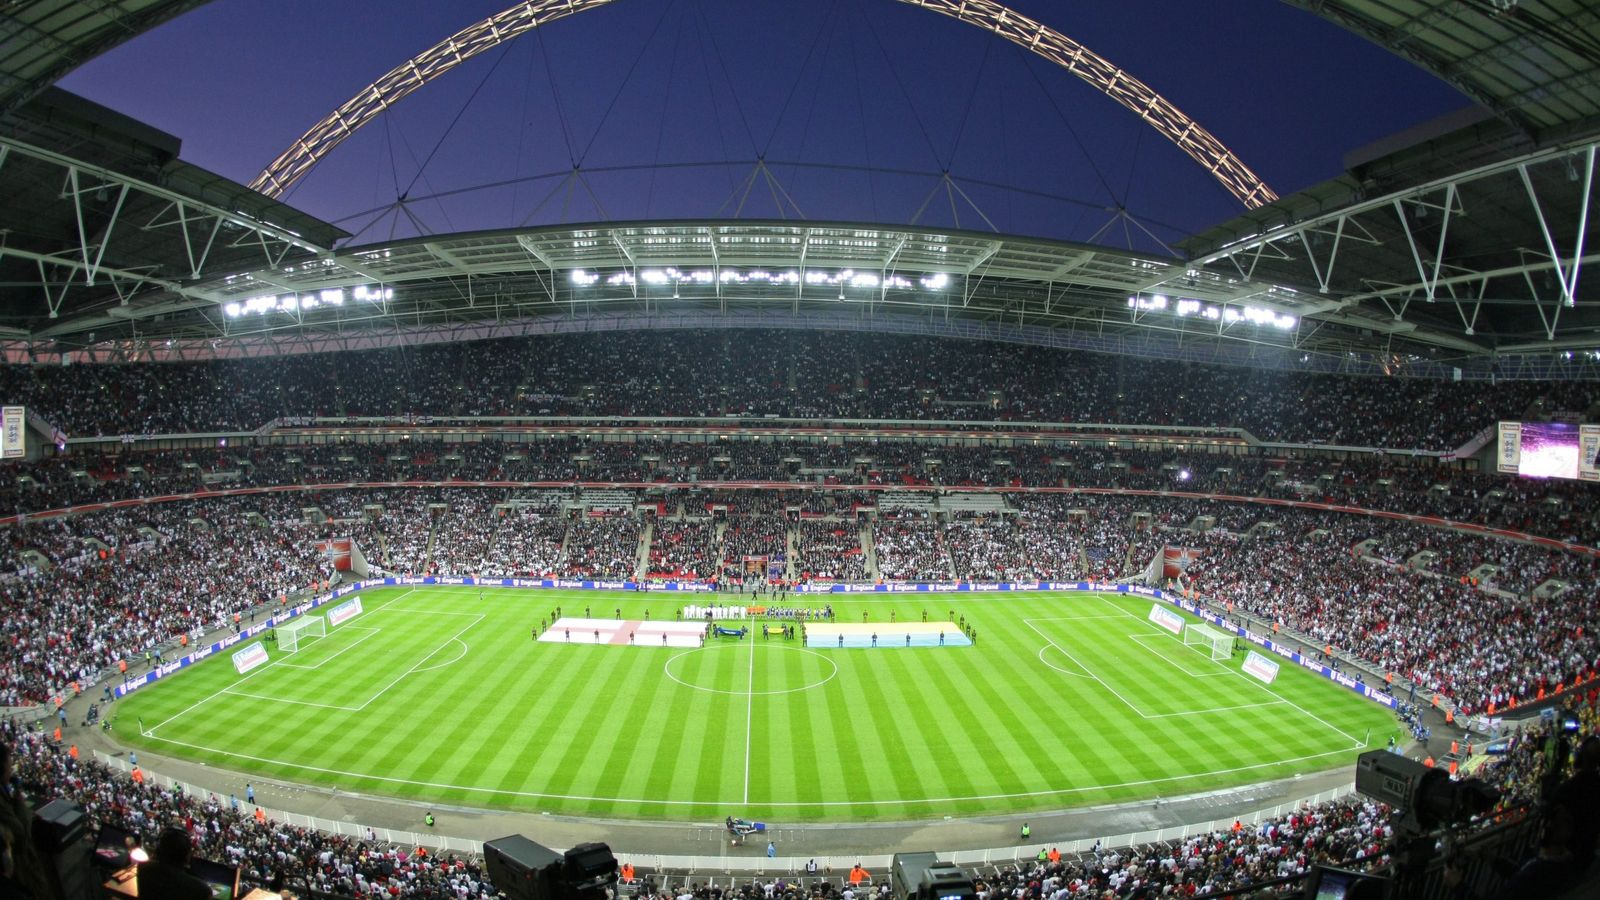 Wembley Stadium hosts a night time qualifying game for the World Cup.